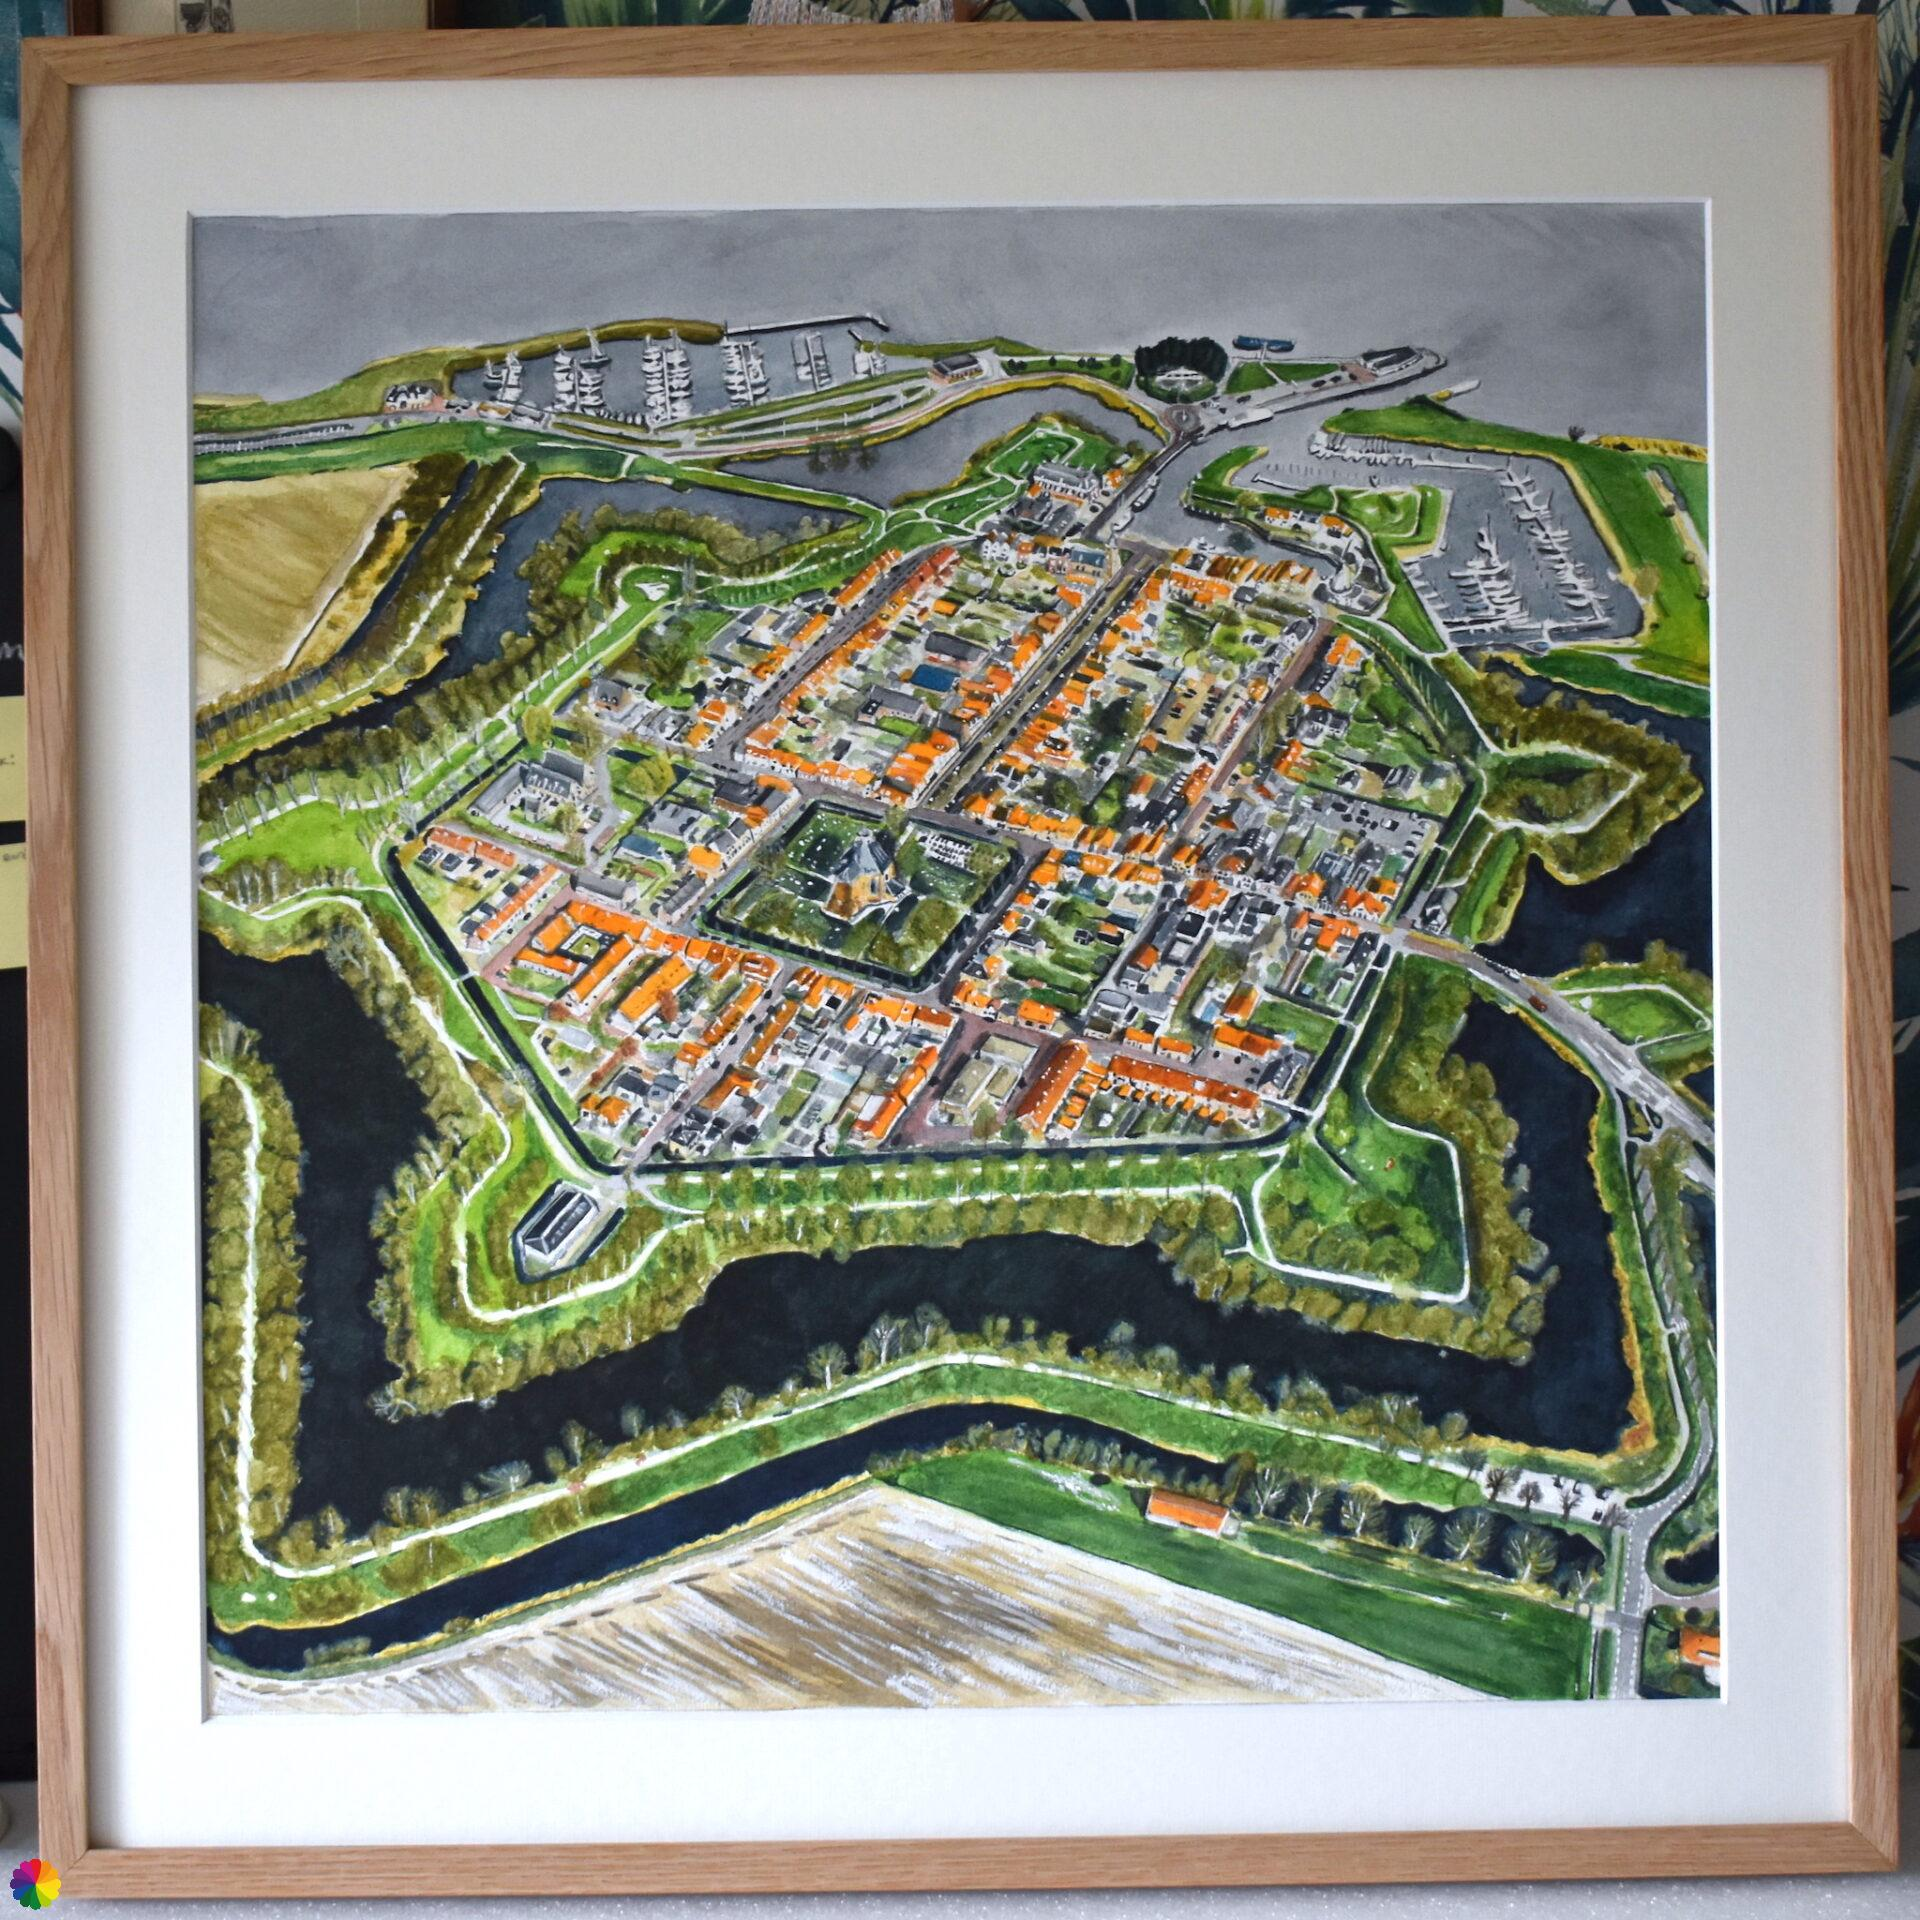 Willemstad in The Netherlands from the air